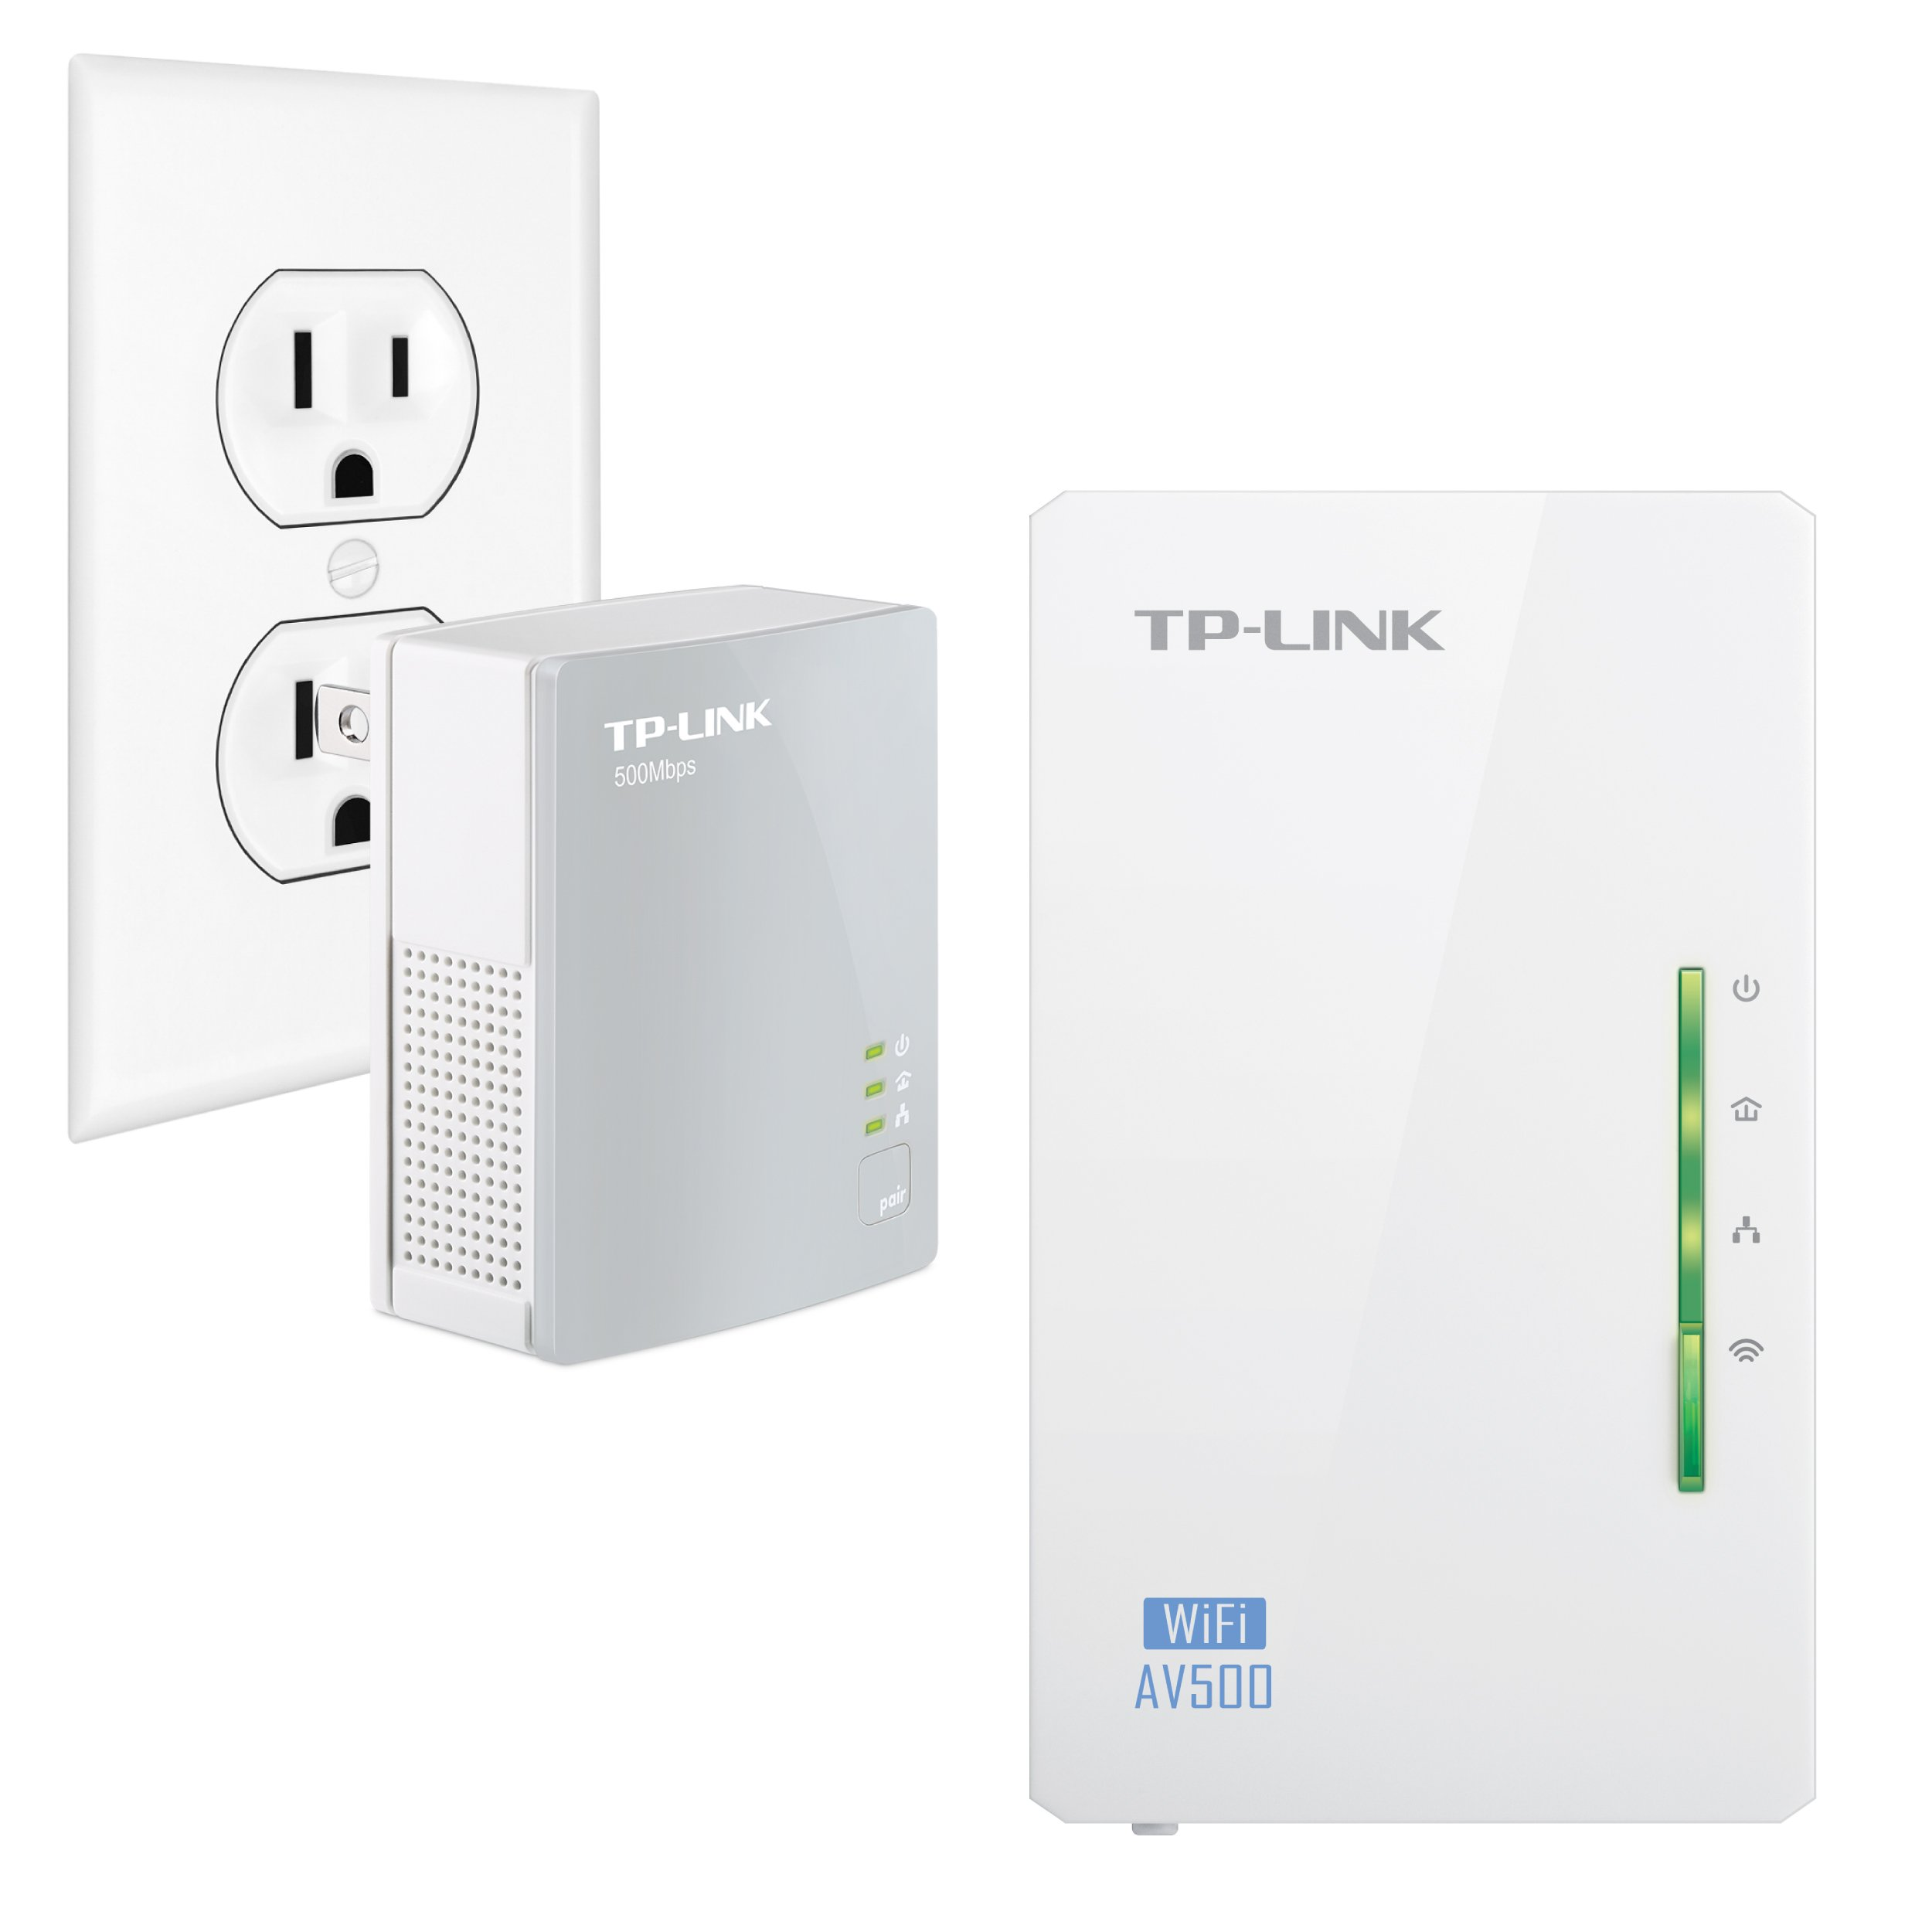 TP-Link N300  Powerline Gigabit Wi-Fi Kit , 2-Kit (N300) by TP-Link